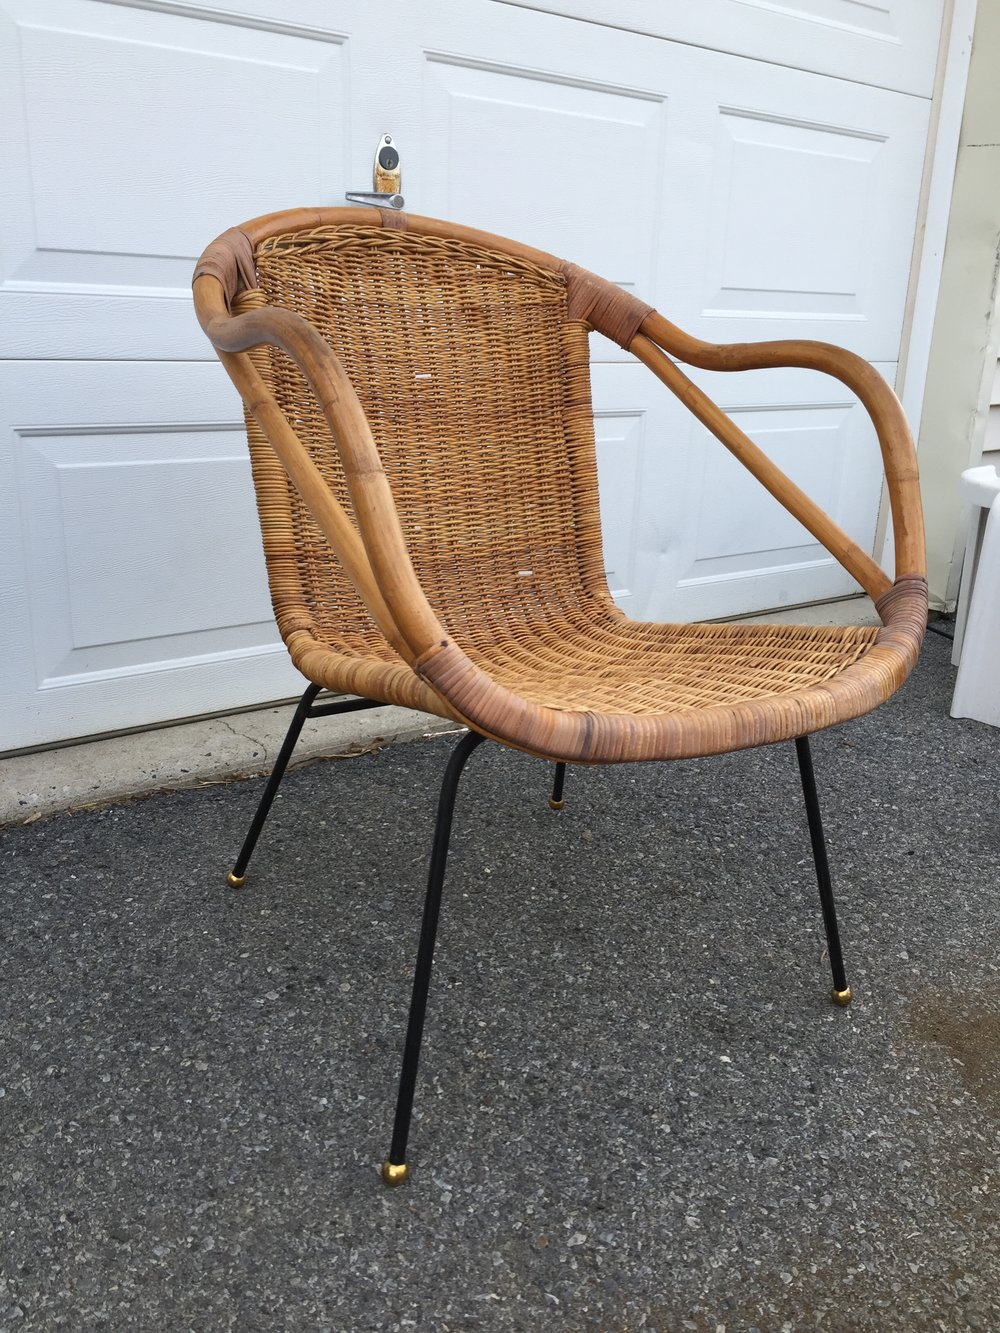 Super hot in boho, Jungalow and eclectic decors, this Calif-Asia bamboo and wicker chair is so cute! In excellent condition! Add a fur or skin, kilim pillow or other accessory and you have a loungy chill space.  Just listed! Milo Baughman actually designed some lines for this company although I do not think this chair was his.